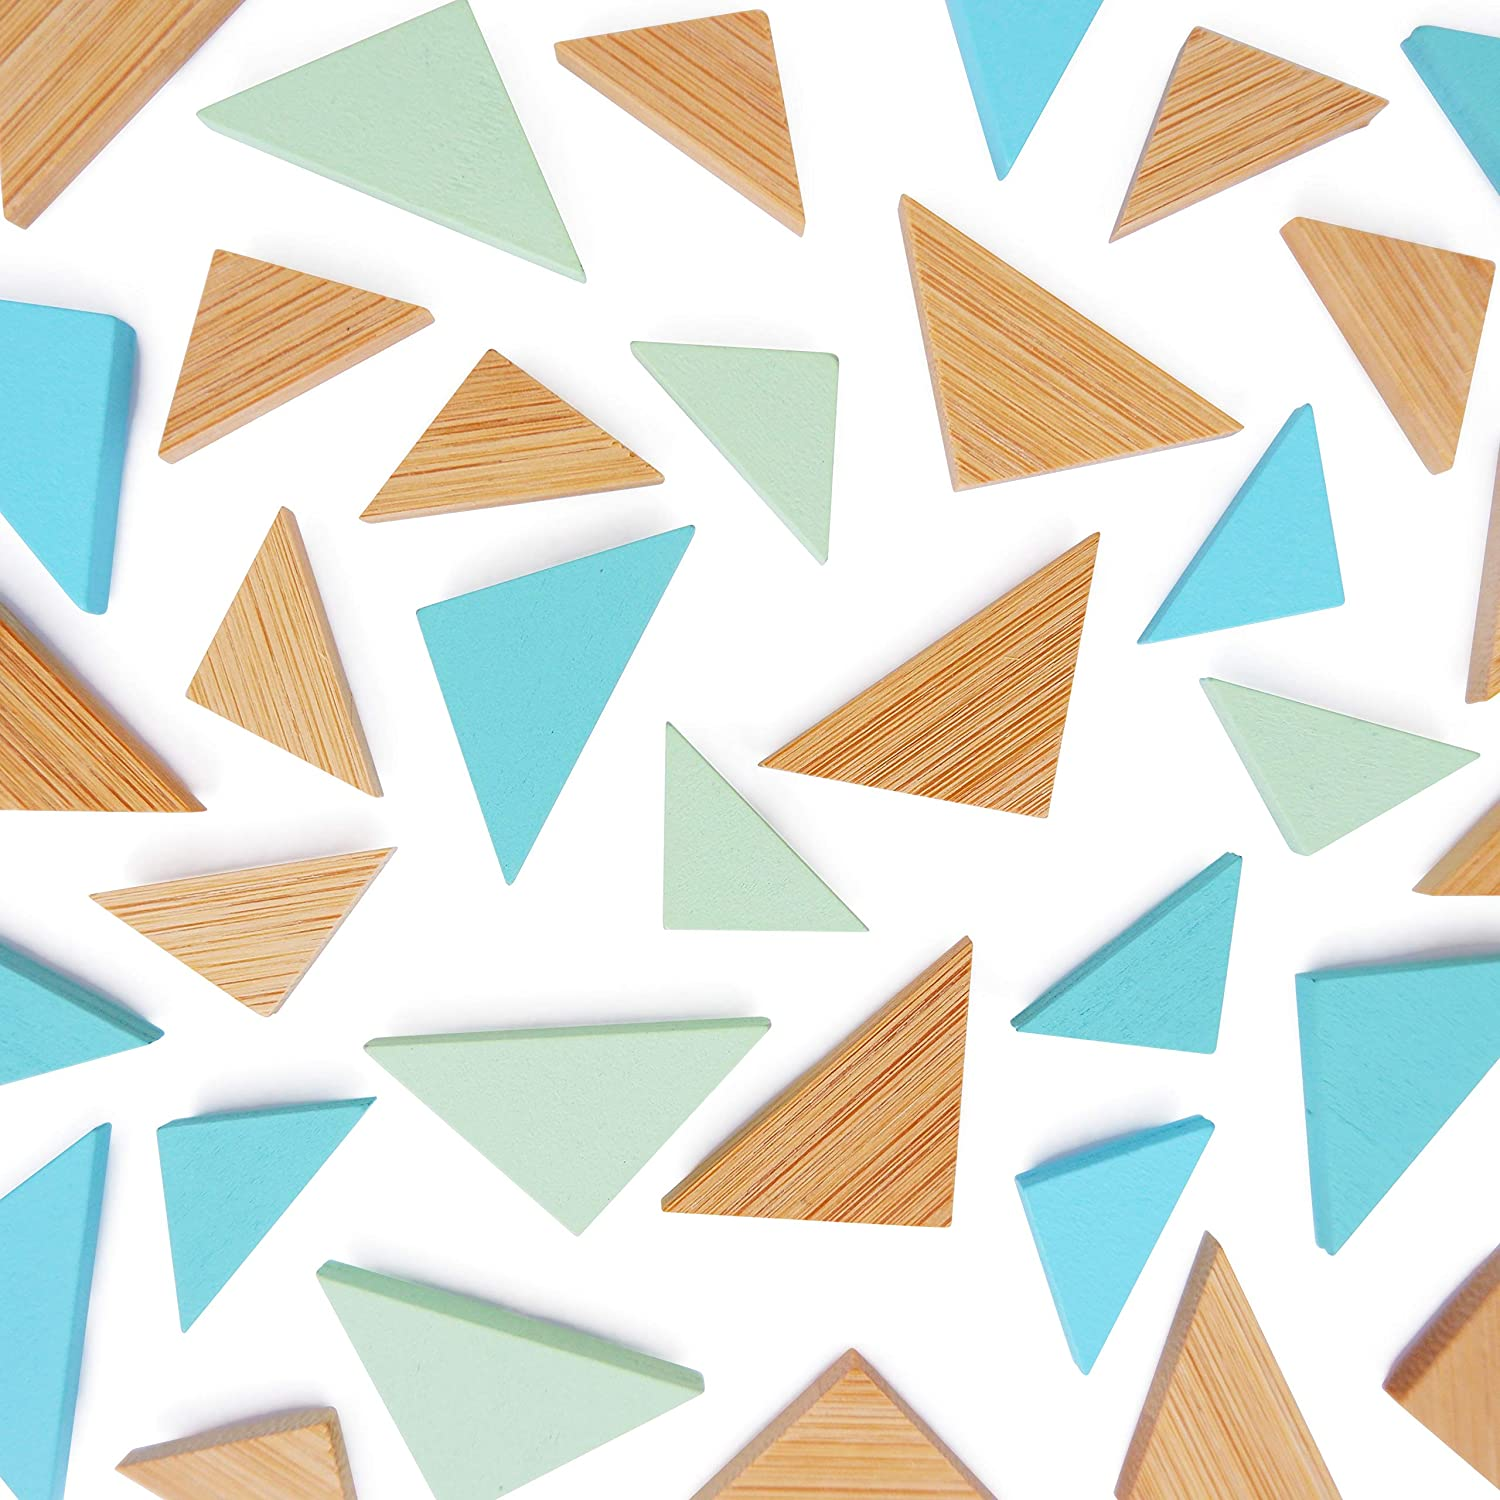 Kit Triangle Teal Themed Magnets, Pack of 36